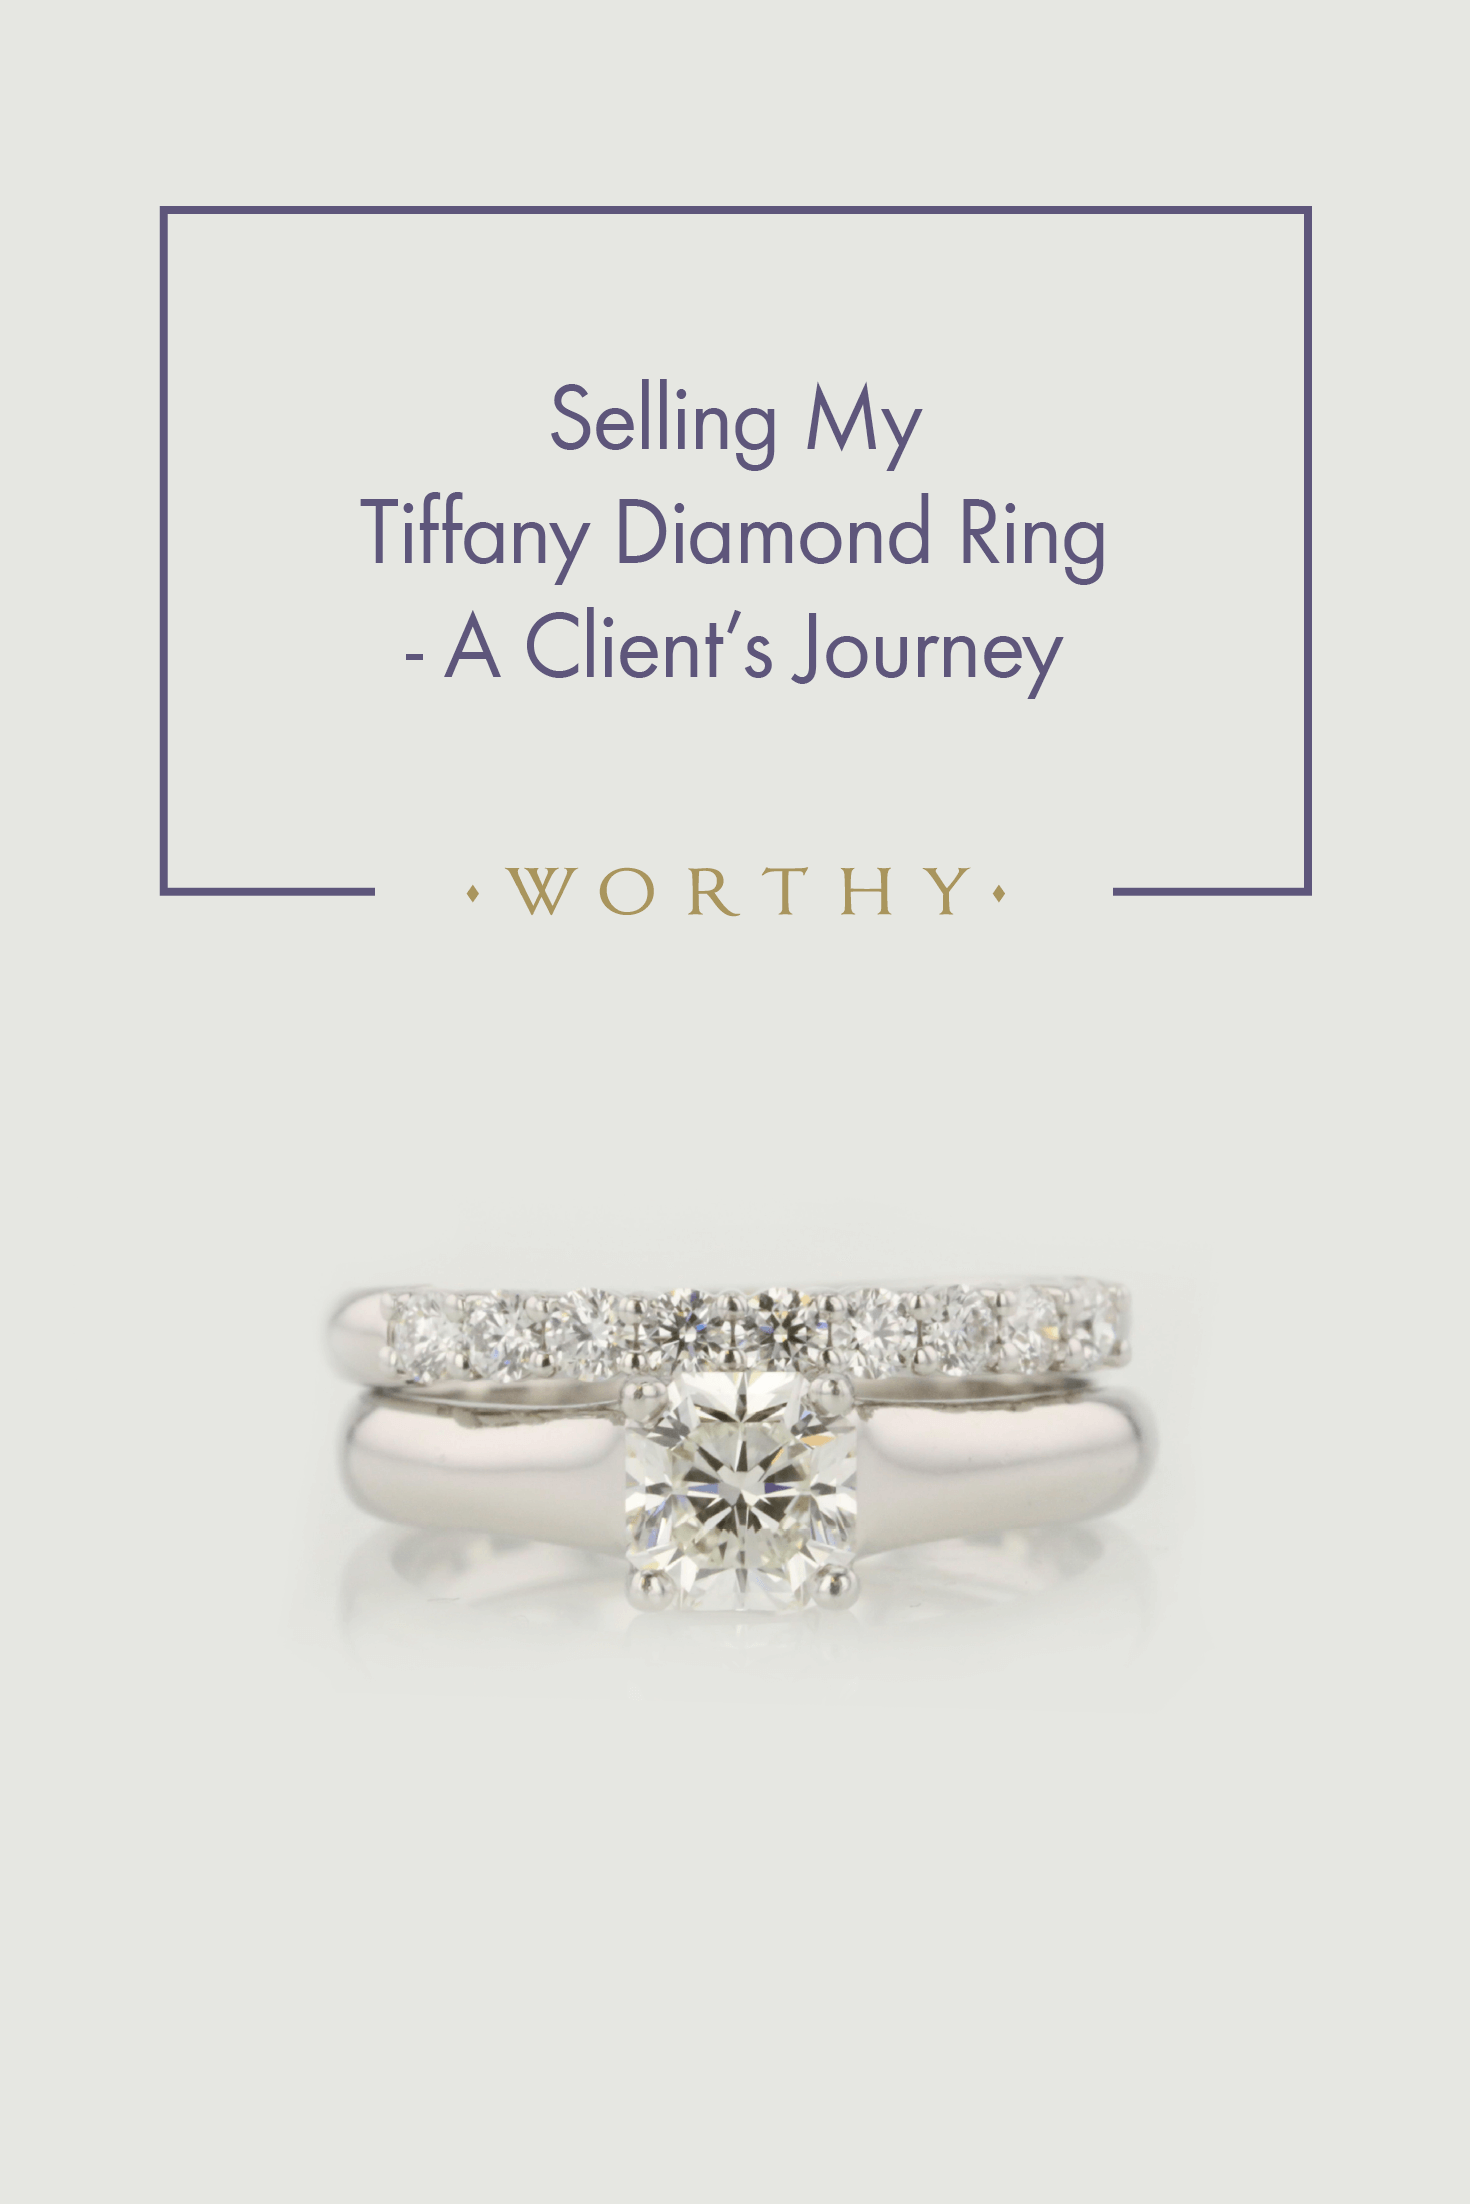 We love hearing about our clients' journey to sell their jewelry, especially when it's a Tiffany & Co diamond that we're talking about. Read Cara's story...